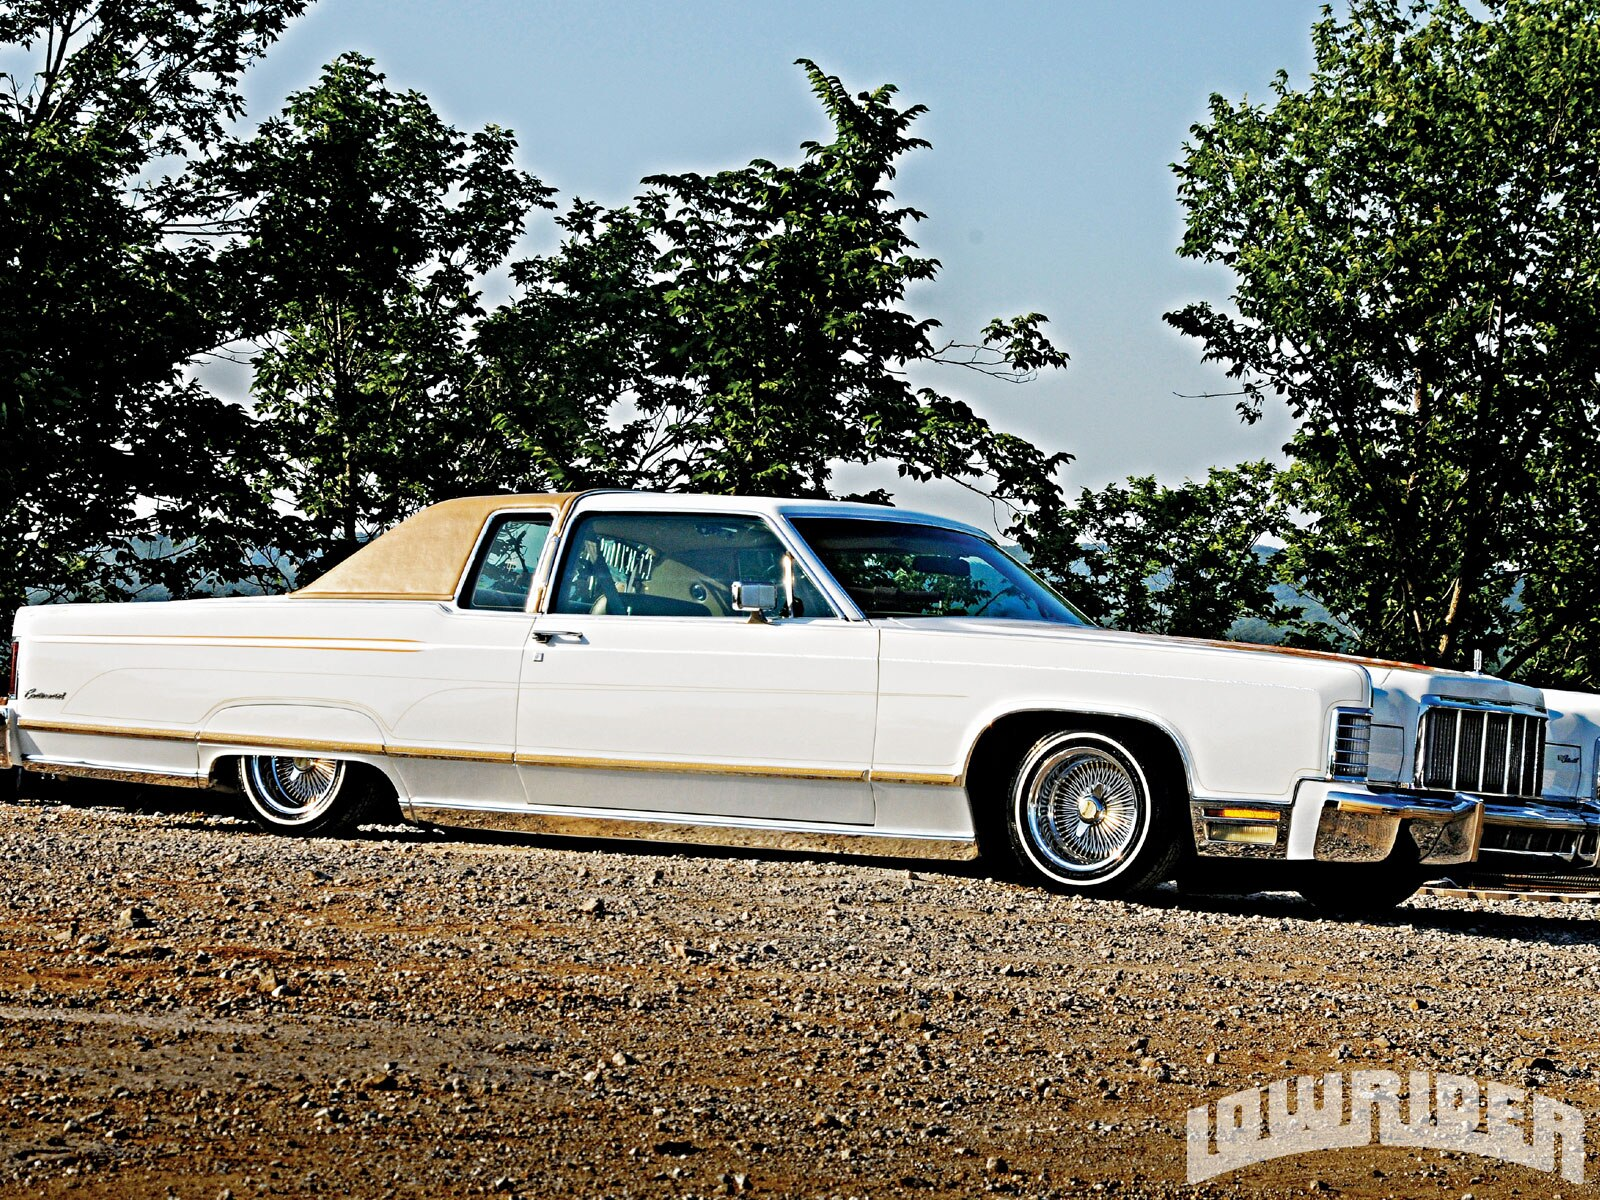 1005-lrmp-01-o-1976-lincoln-town-car-passenger-side2